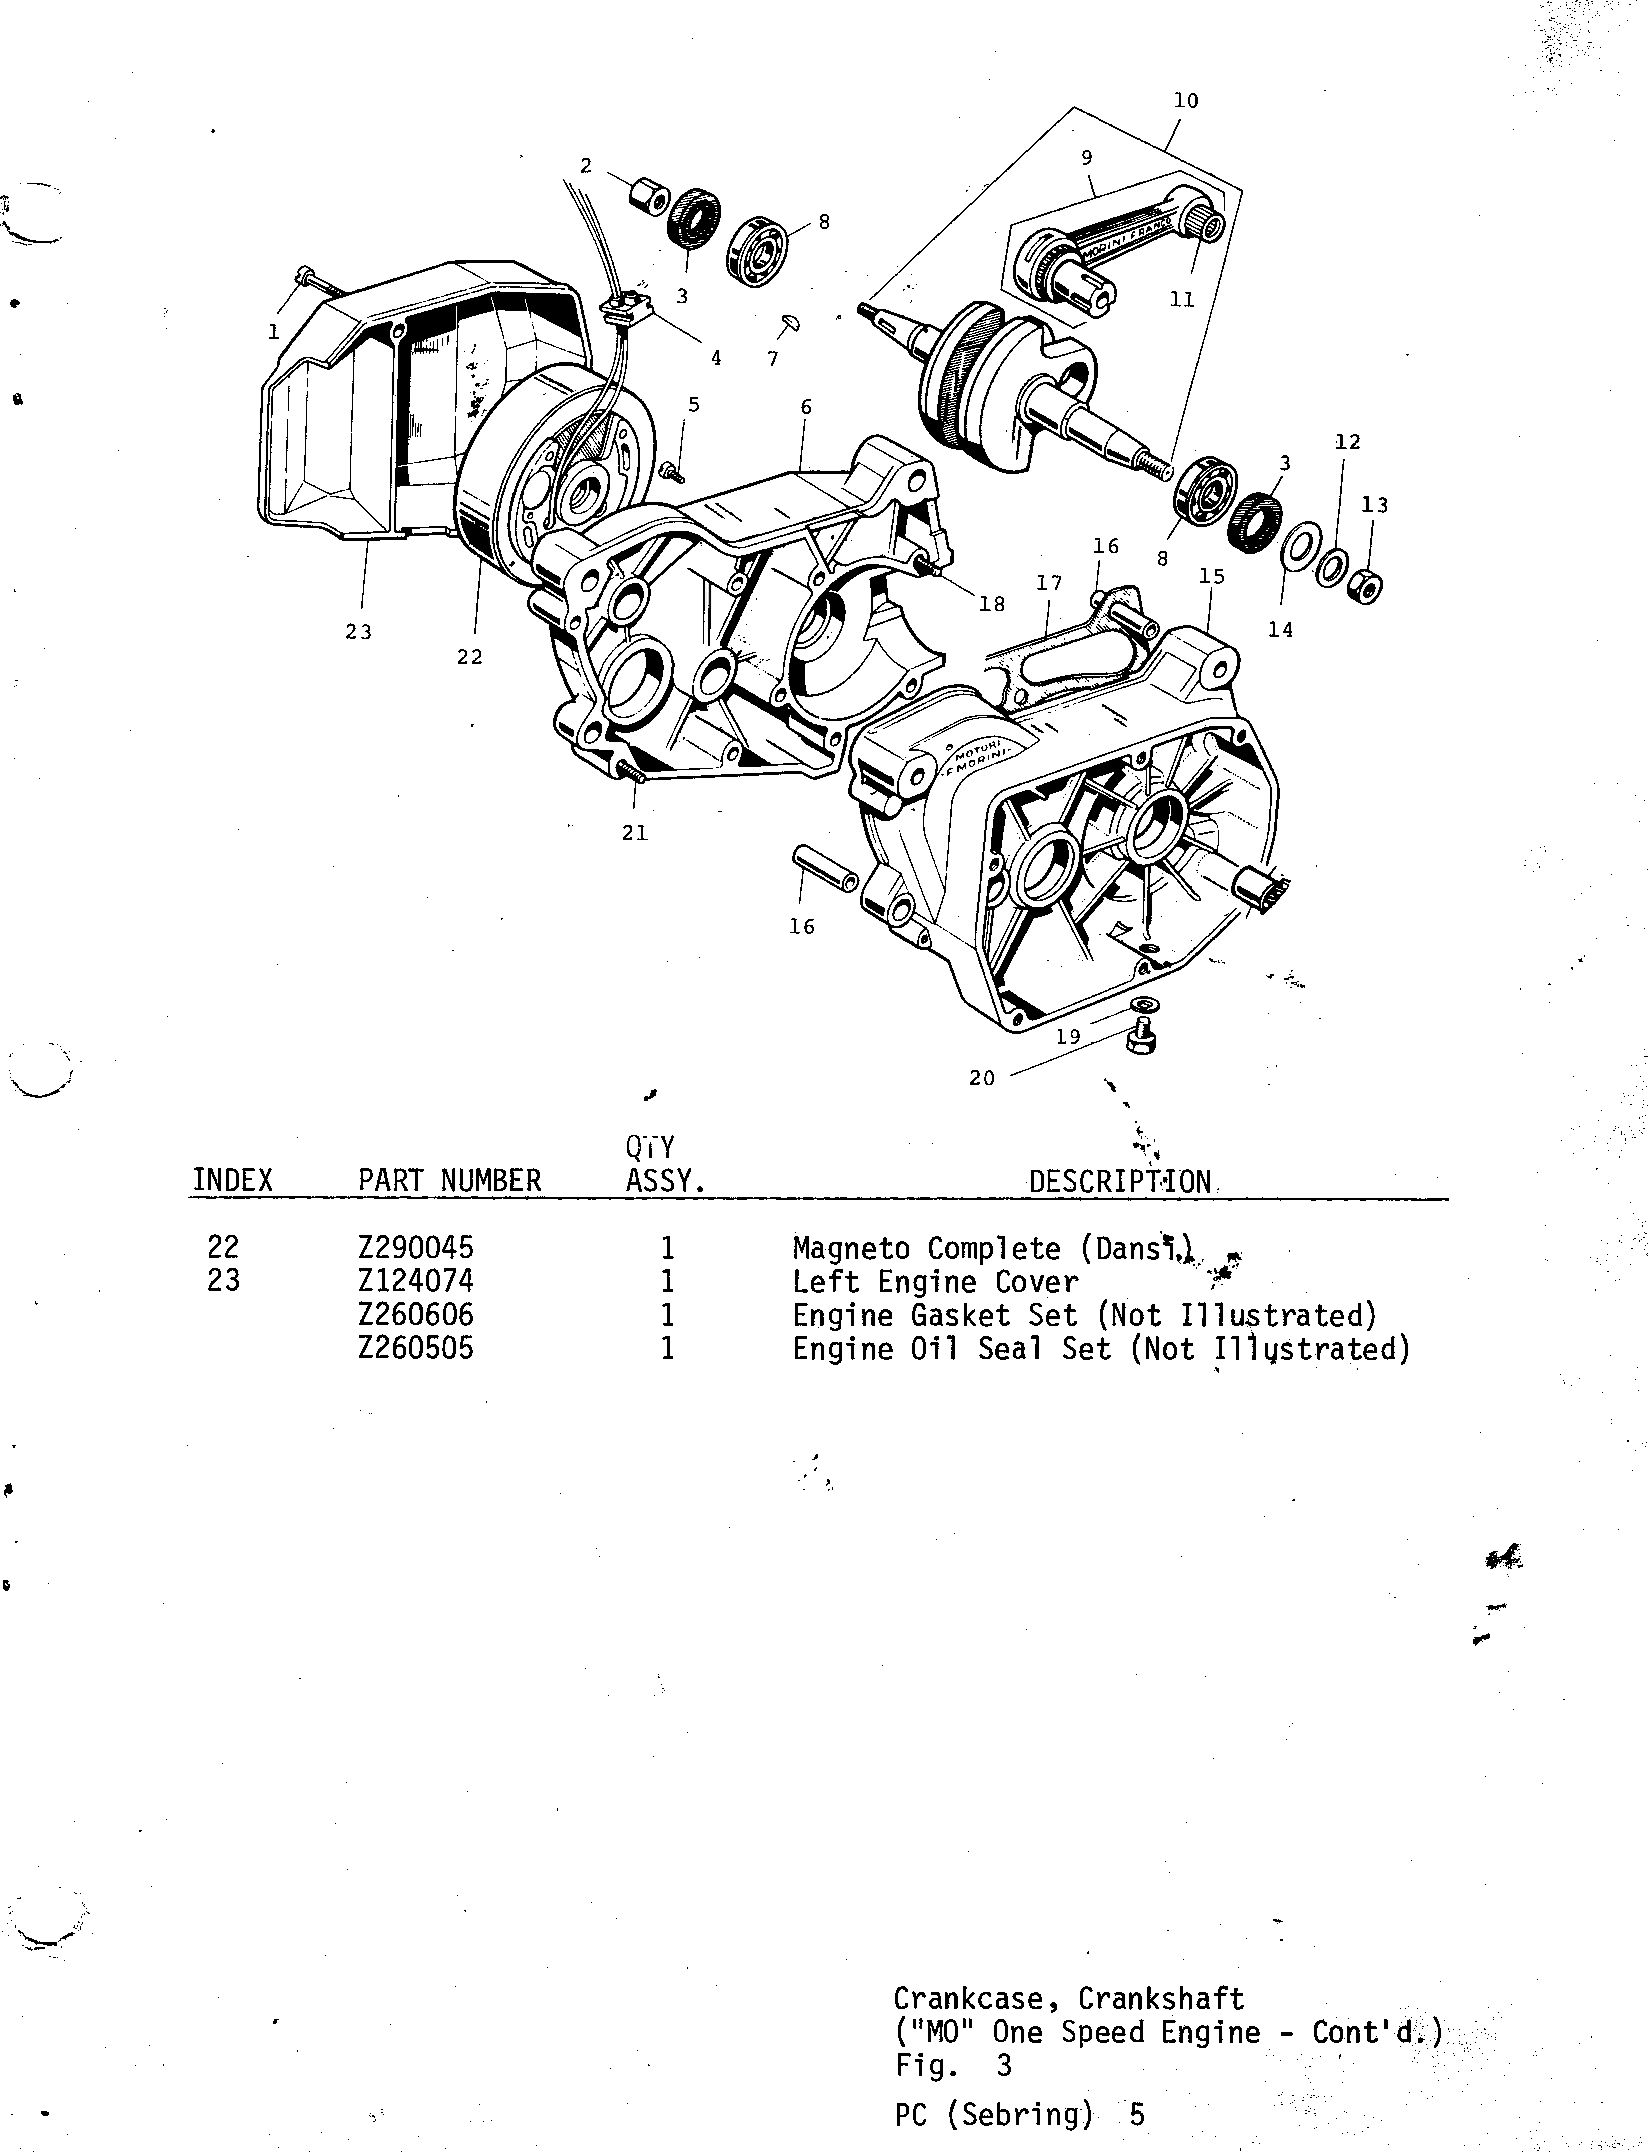 05-CRANKCASE, CRANKSHAFT, M0 ONE SPEED ENGINE